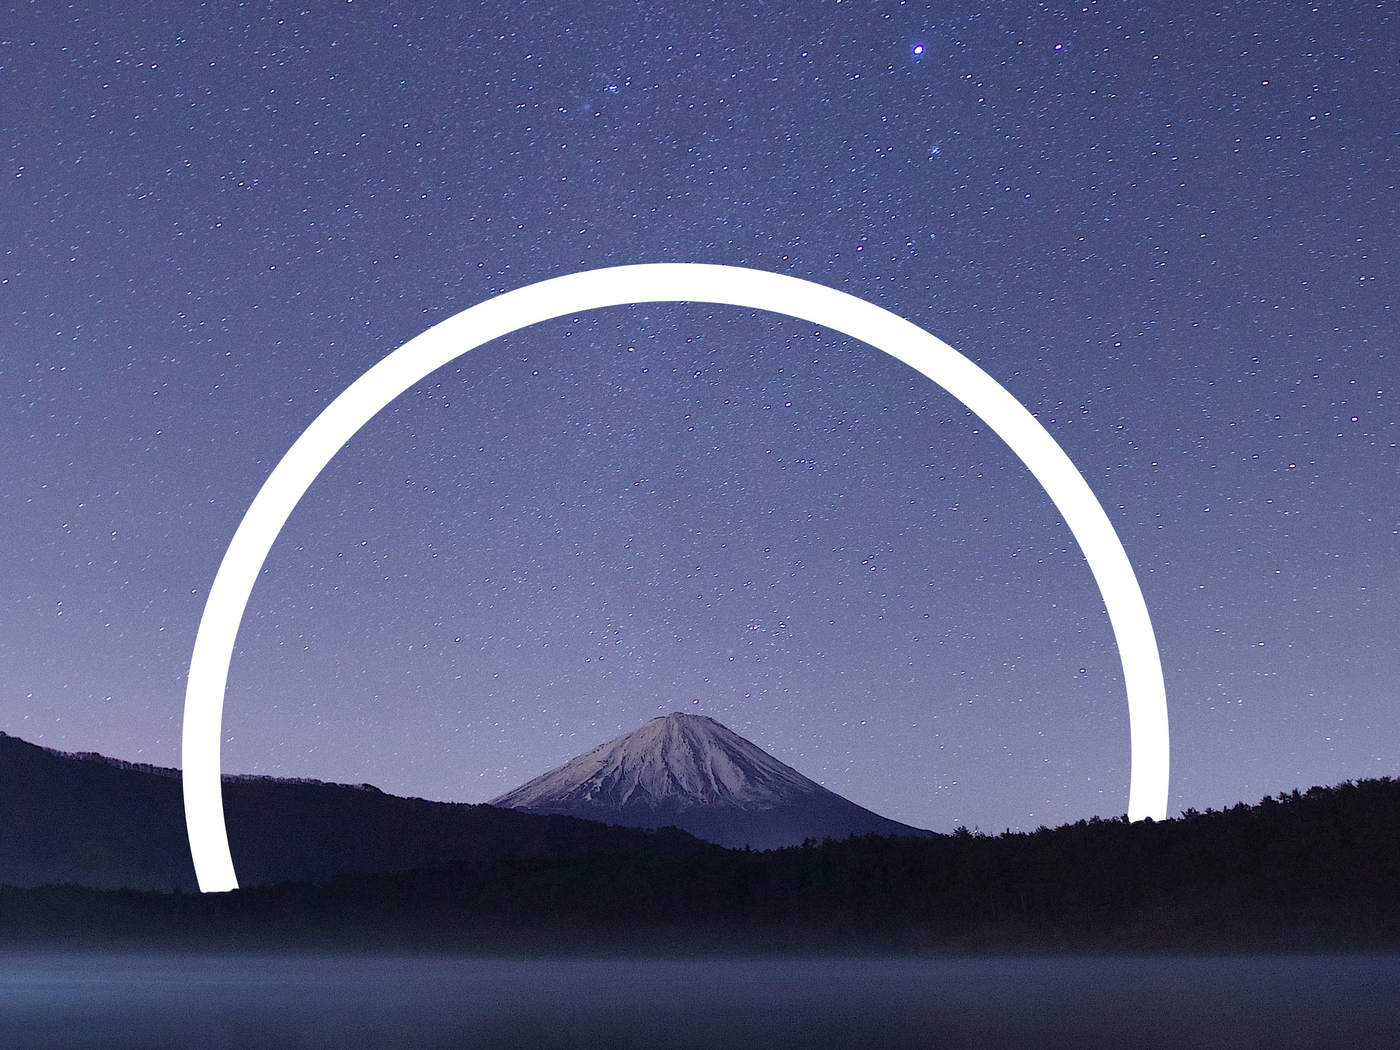 mount-fuji-abstract-vs-nature-xa.jpg